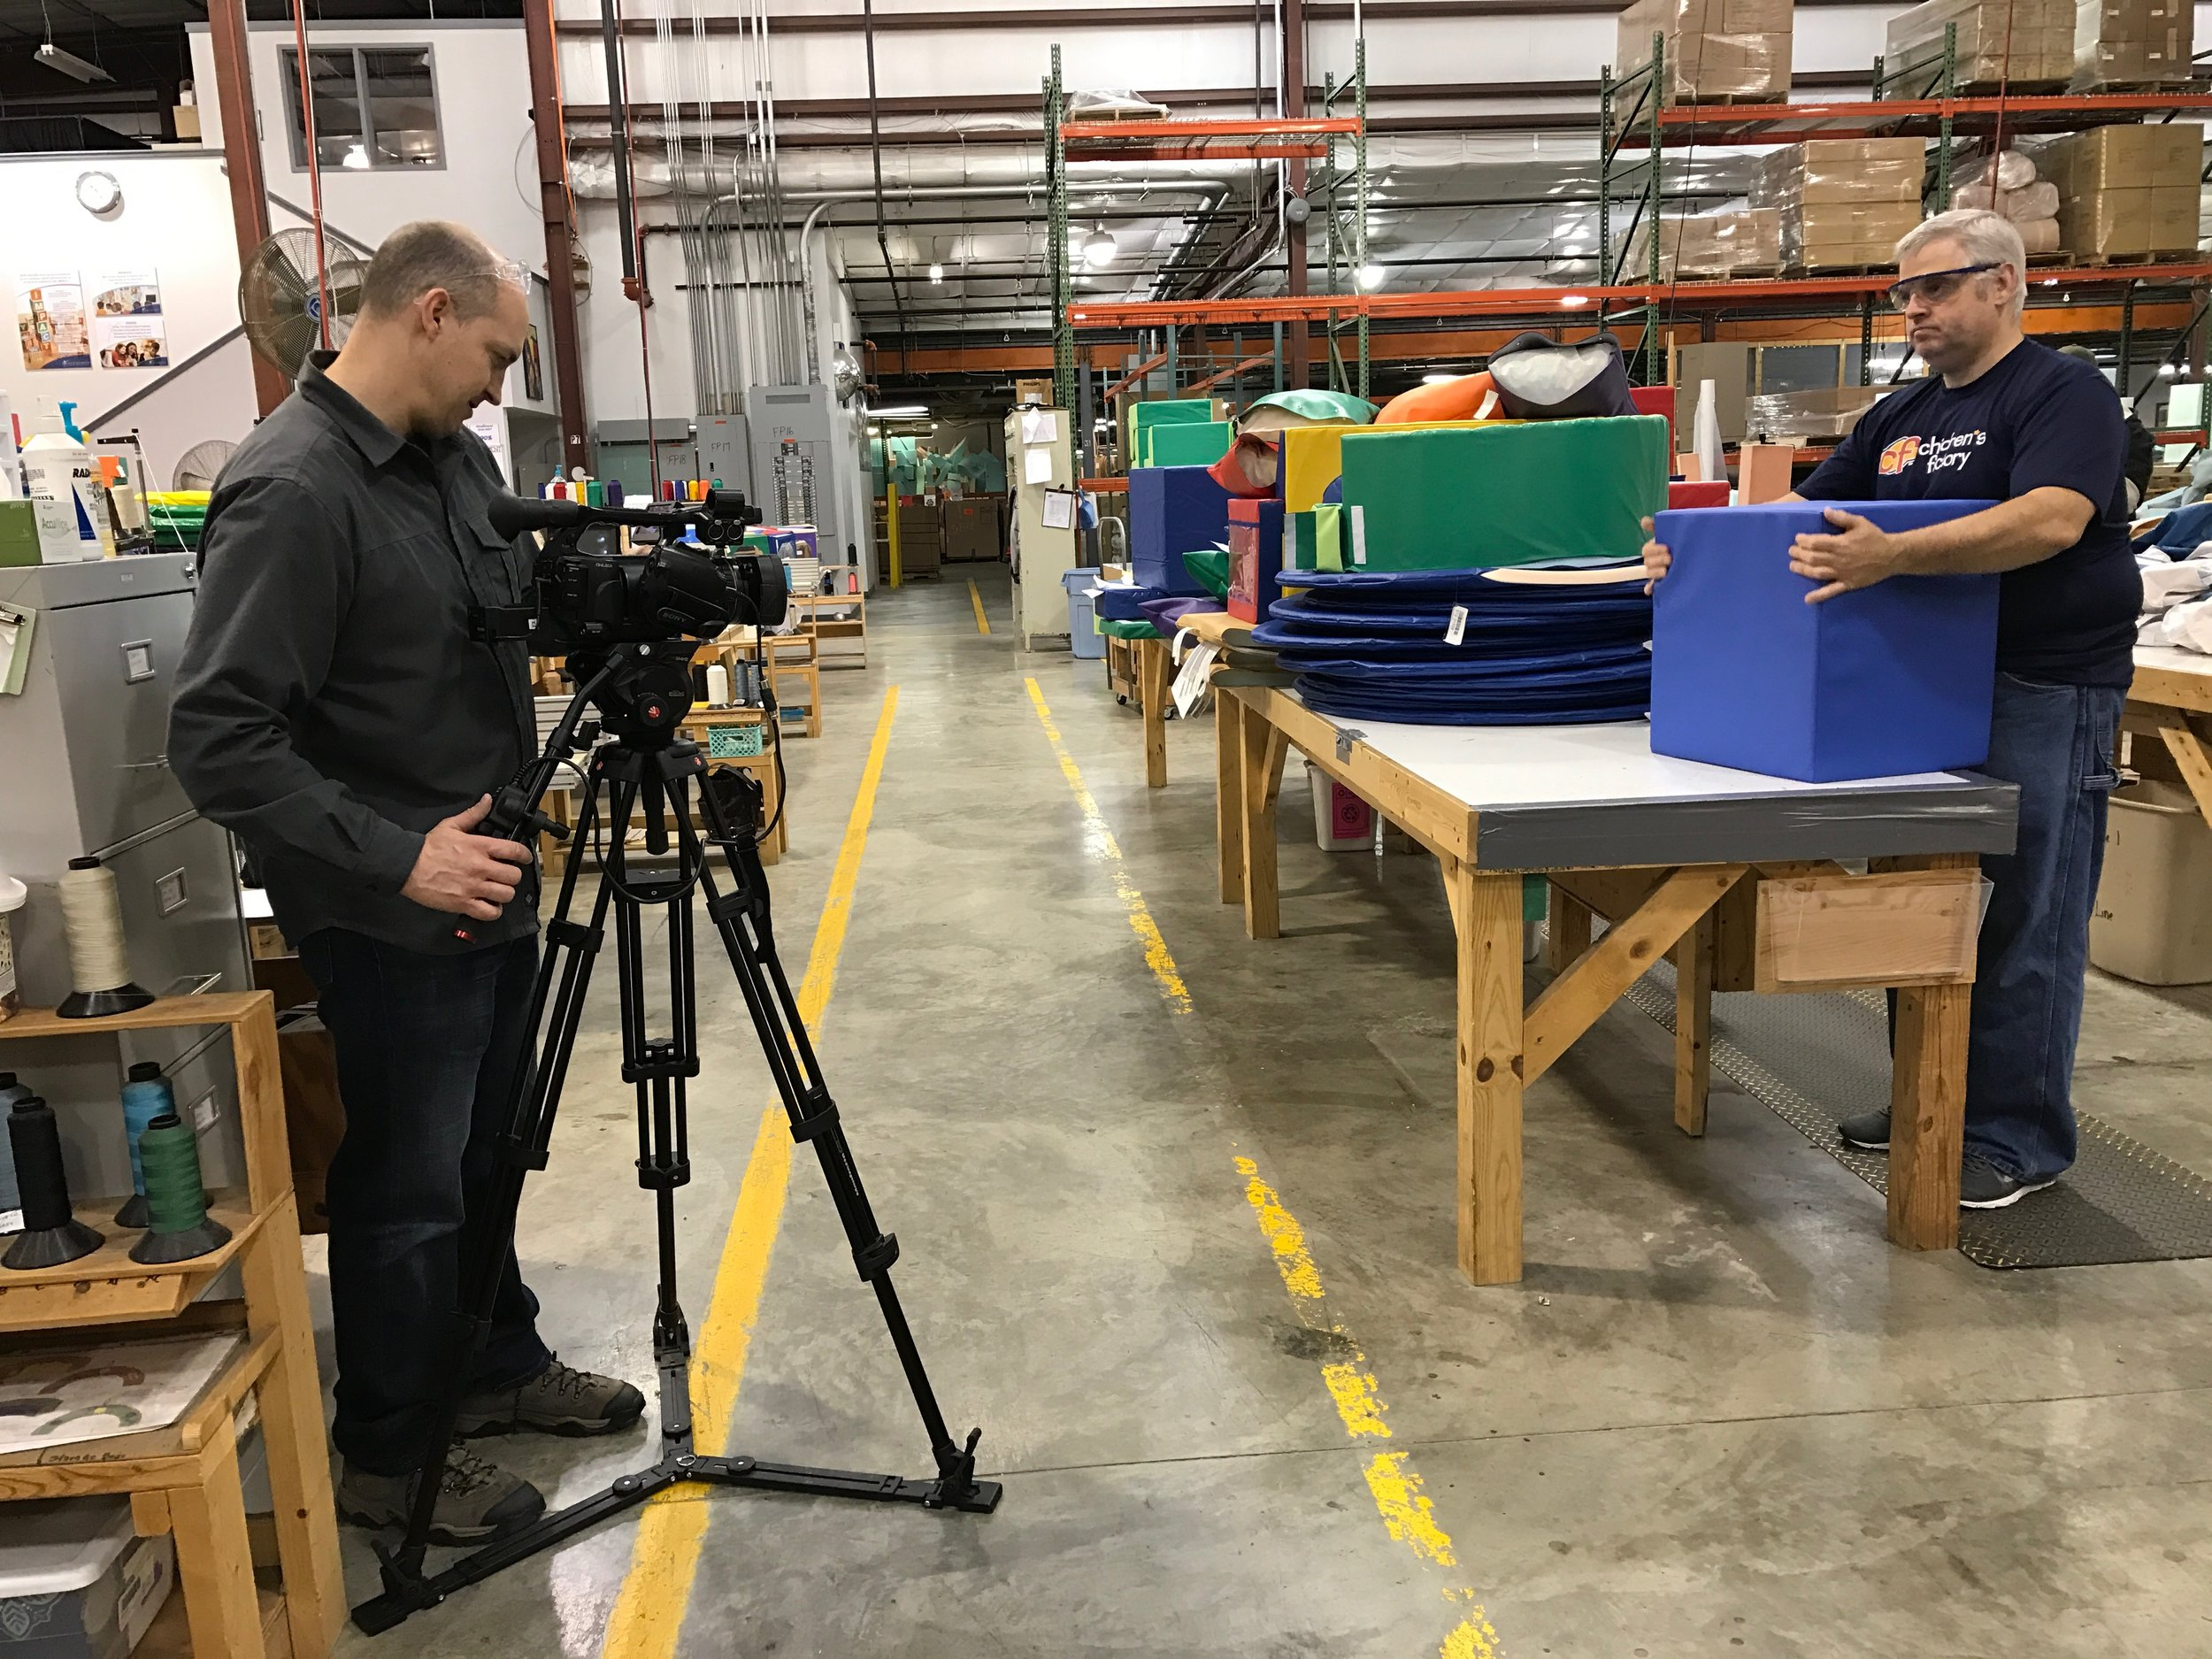 LTM at Children's Factory filming the block stuffing process.